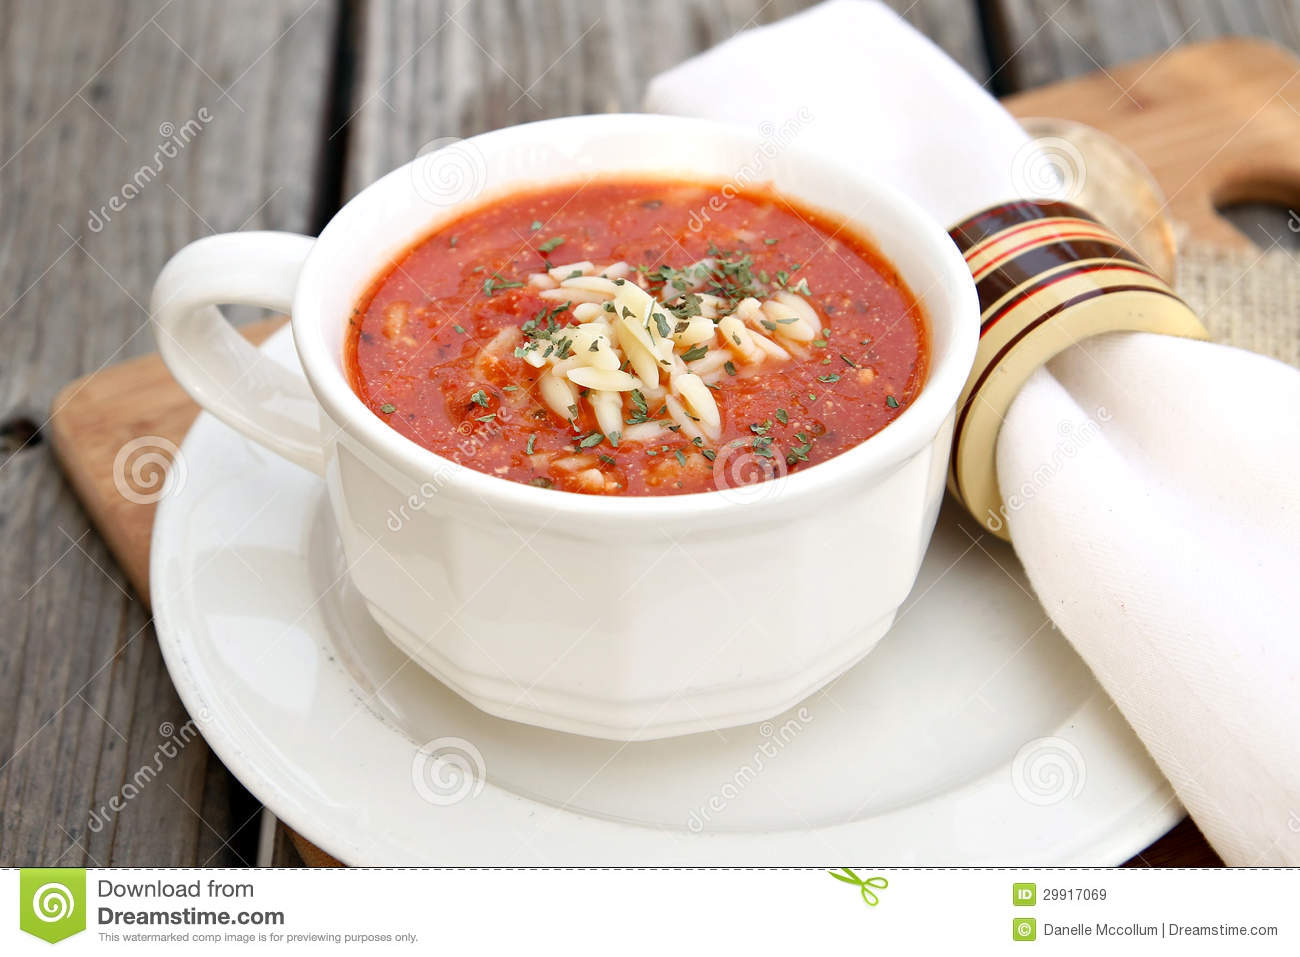 Tomato Soup With Orzo Royalty Free Stock Images - Image: 29917069